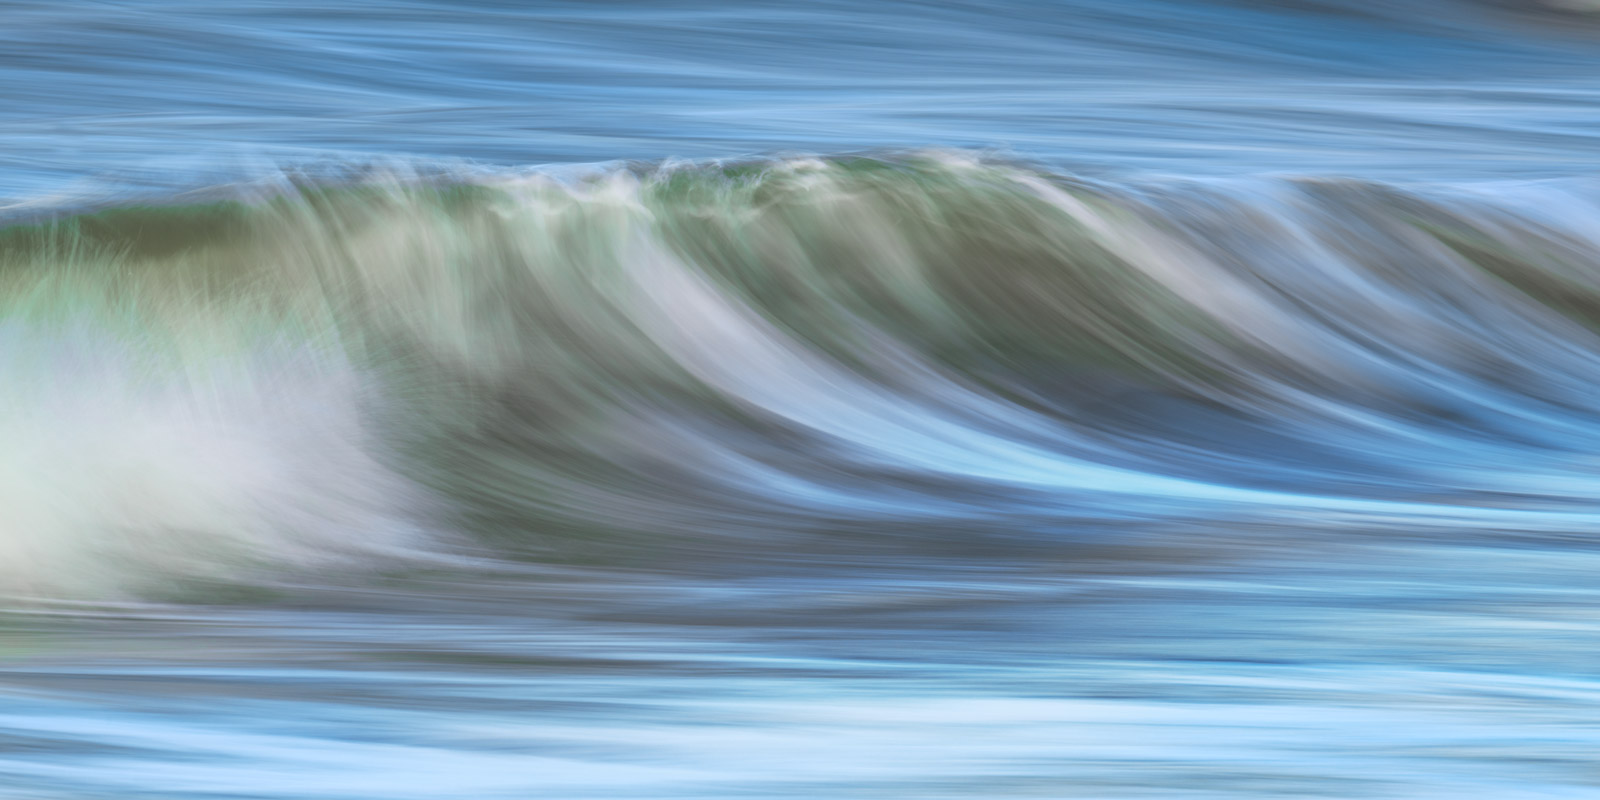 A Limited Edition, Fine Art abstract photograph capturing the blue and green colors in the water in the ocean off the coast of...